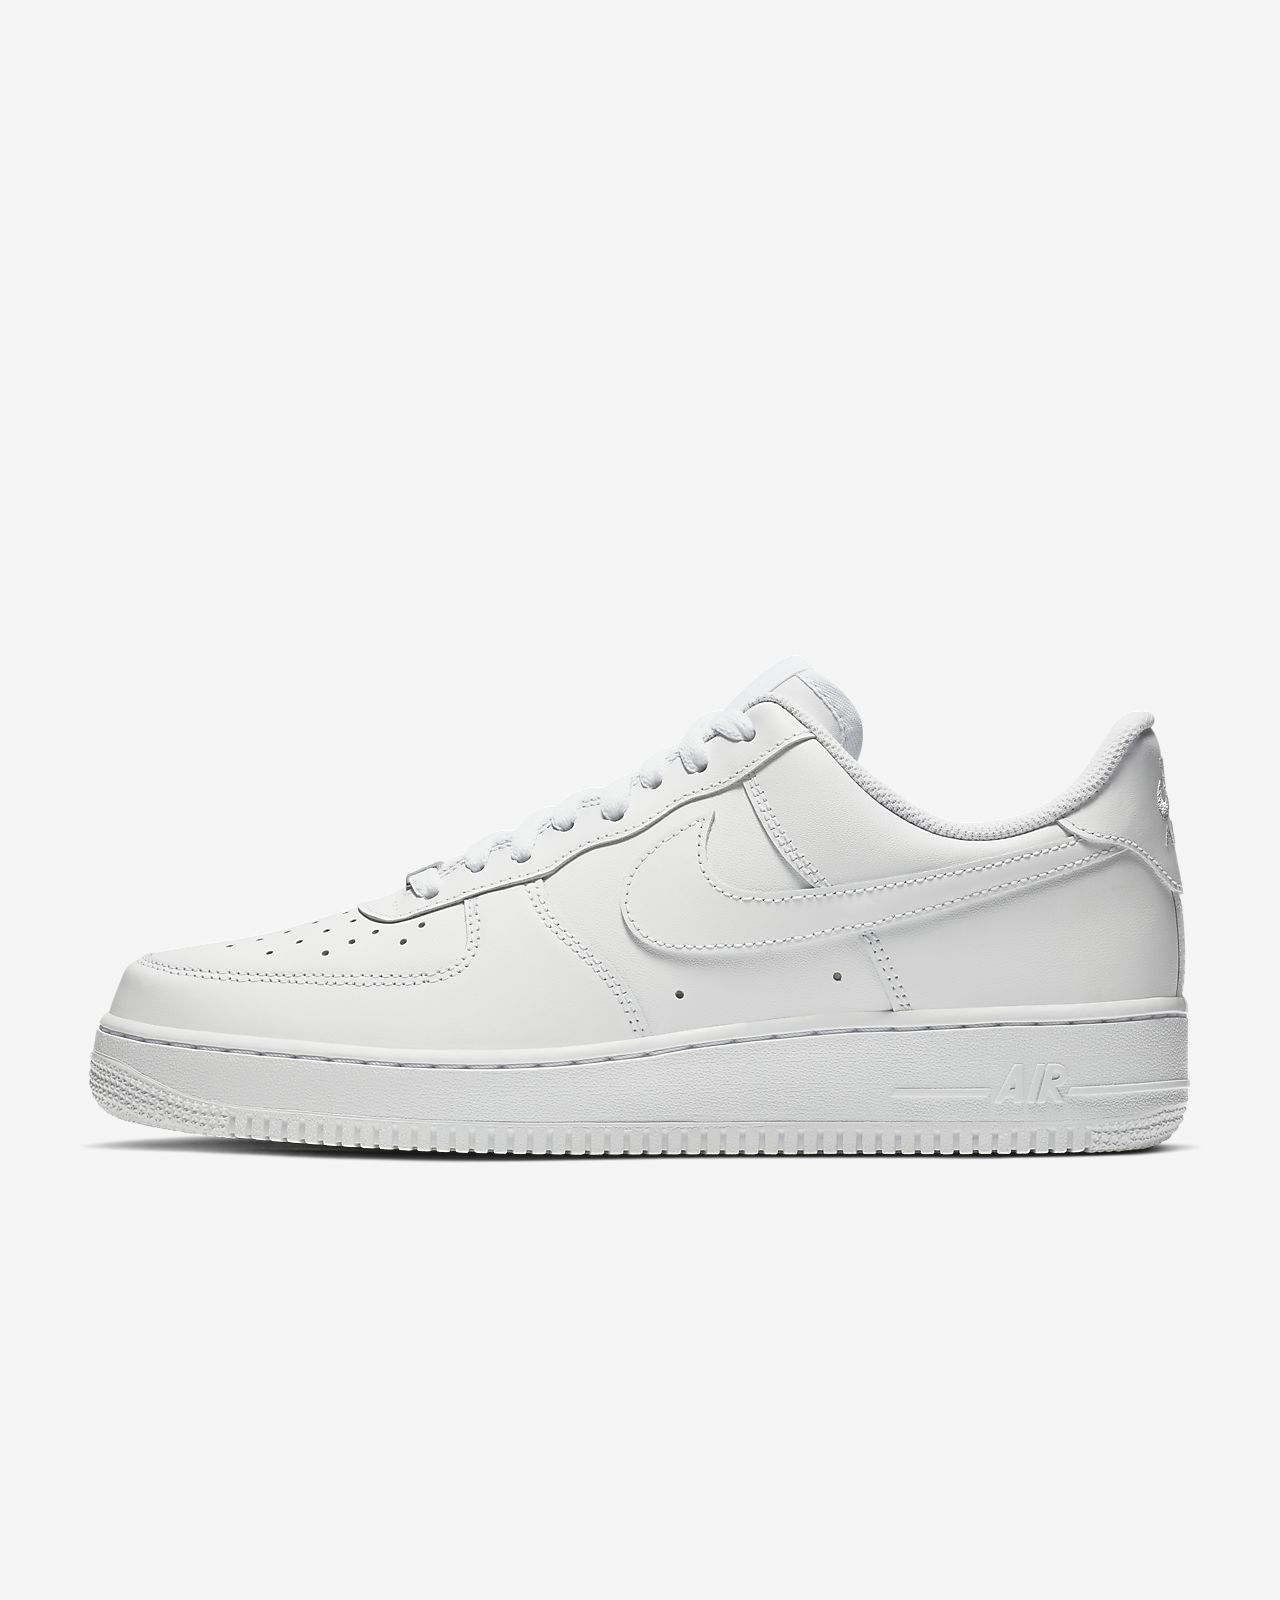 low priced 2b4e1 0f540 Calzado Nike Air Force 1 '07. Nike.com MX